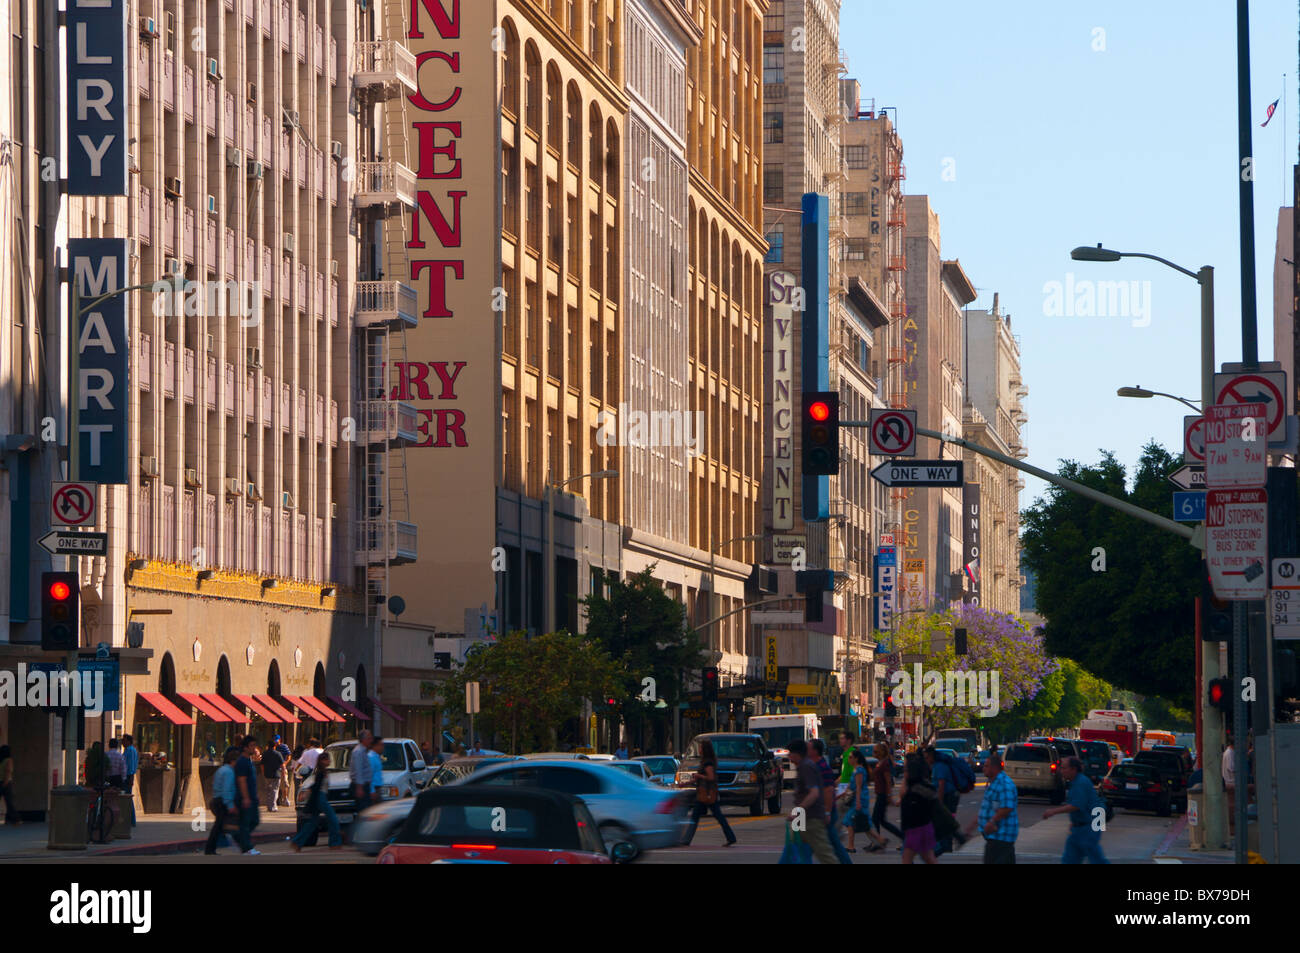 Downtown, Jewelry Quarter, Los Angeles, California, United States of America, North America - Stock Image